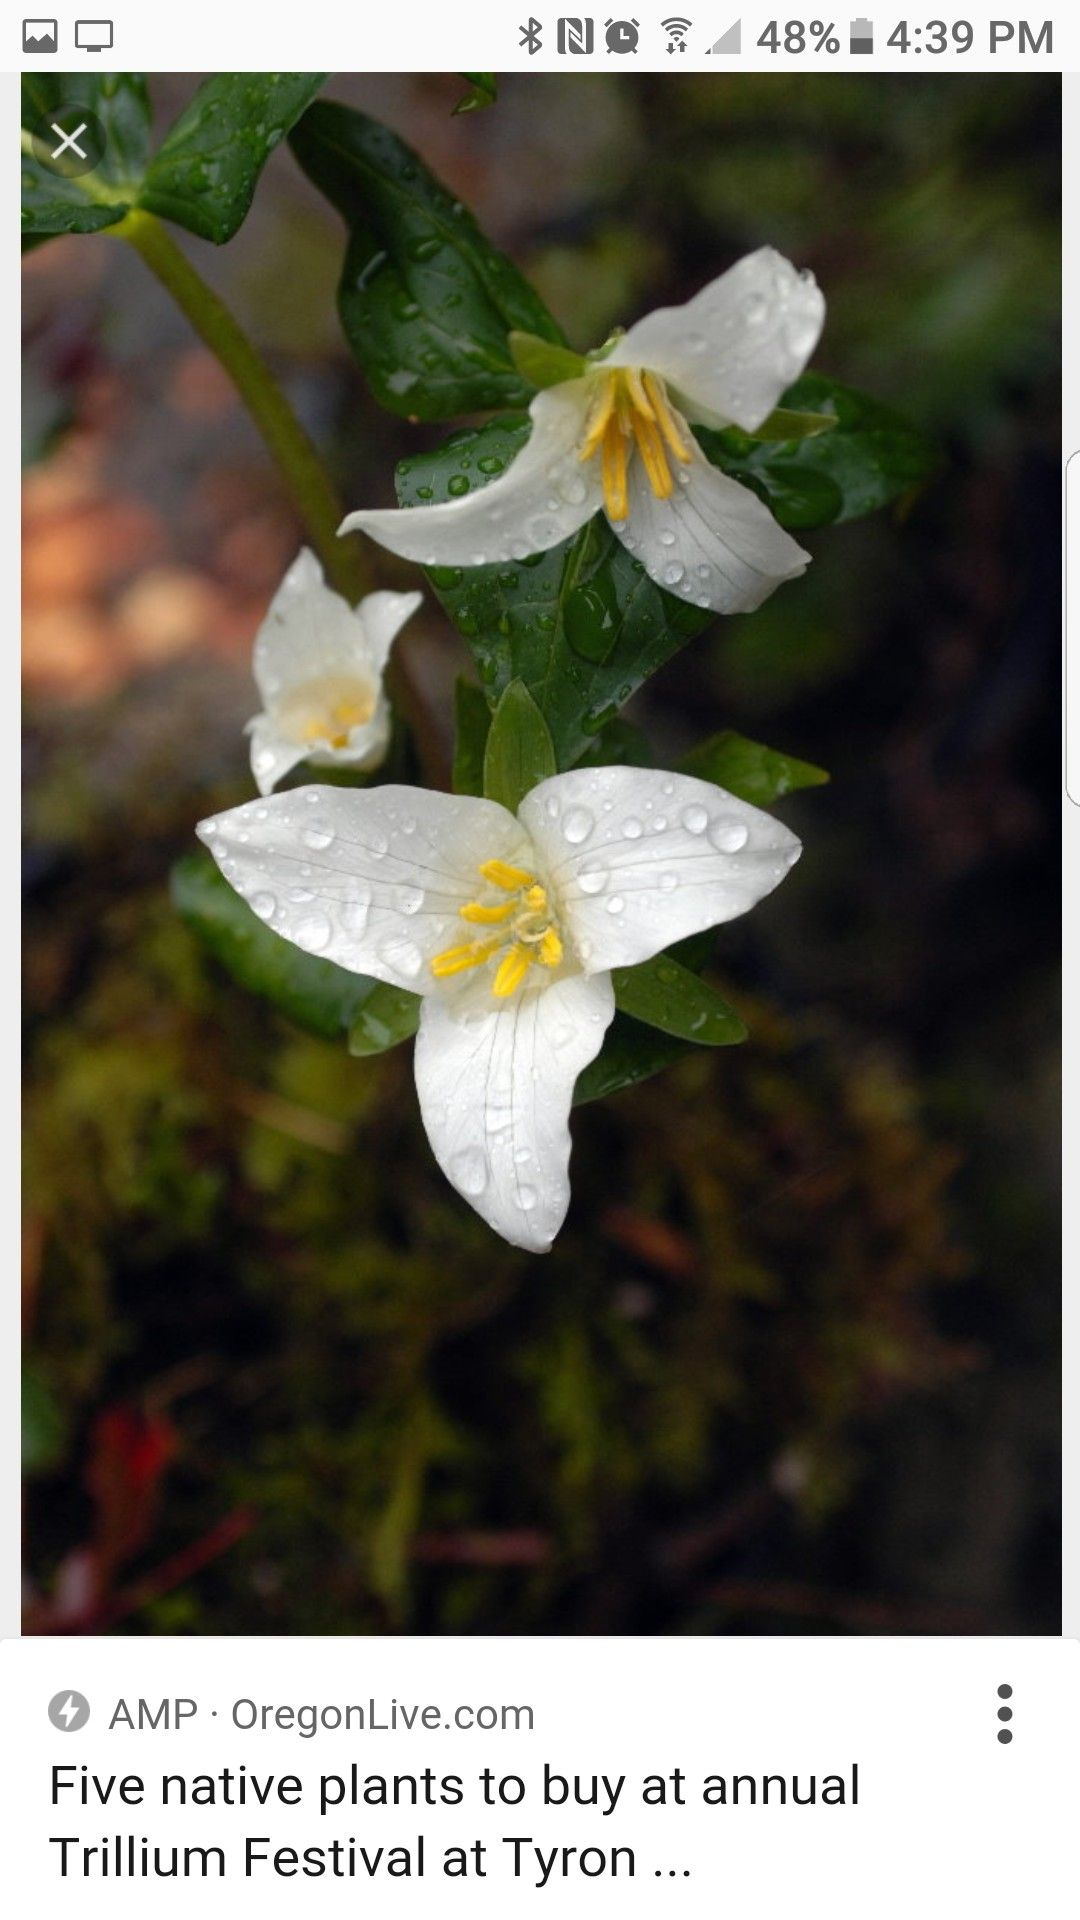 Gartenplanung Ipad Pin Von Salma Rosalin Auf Raindrops Morning Dew